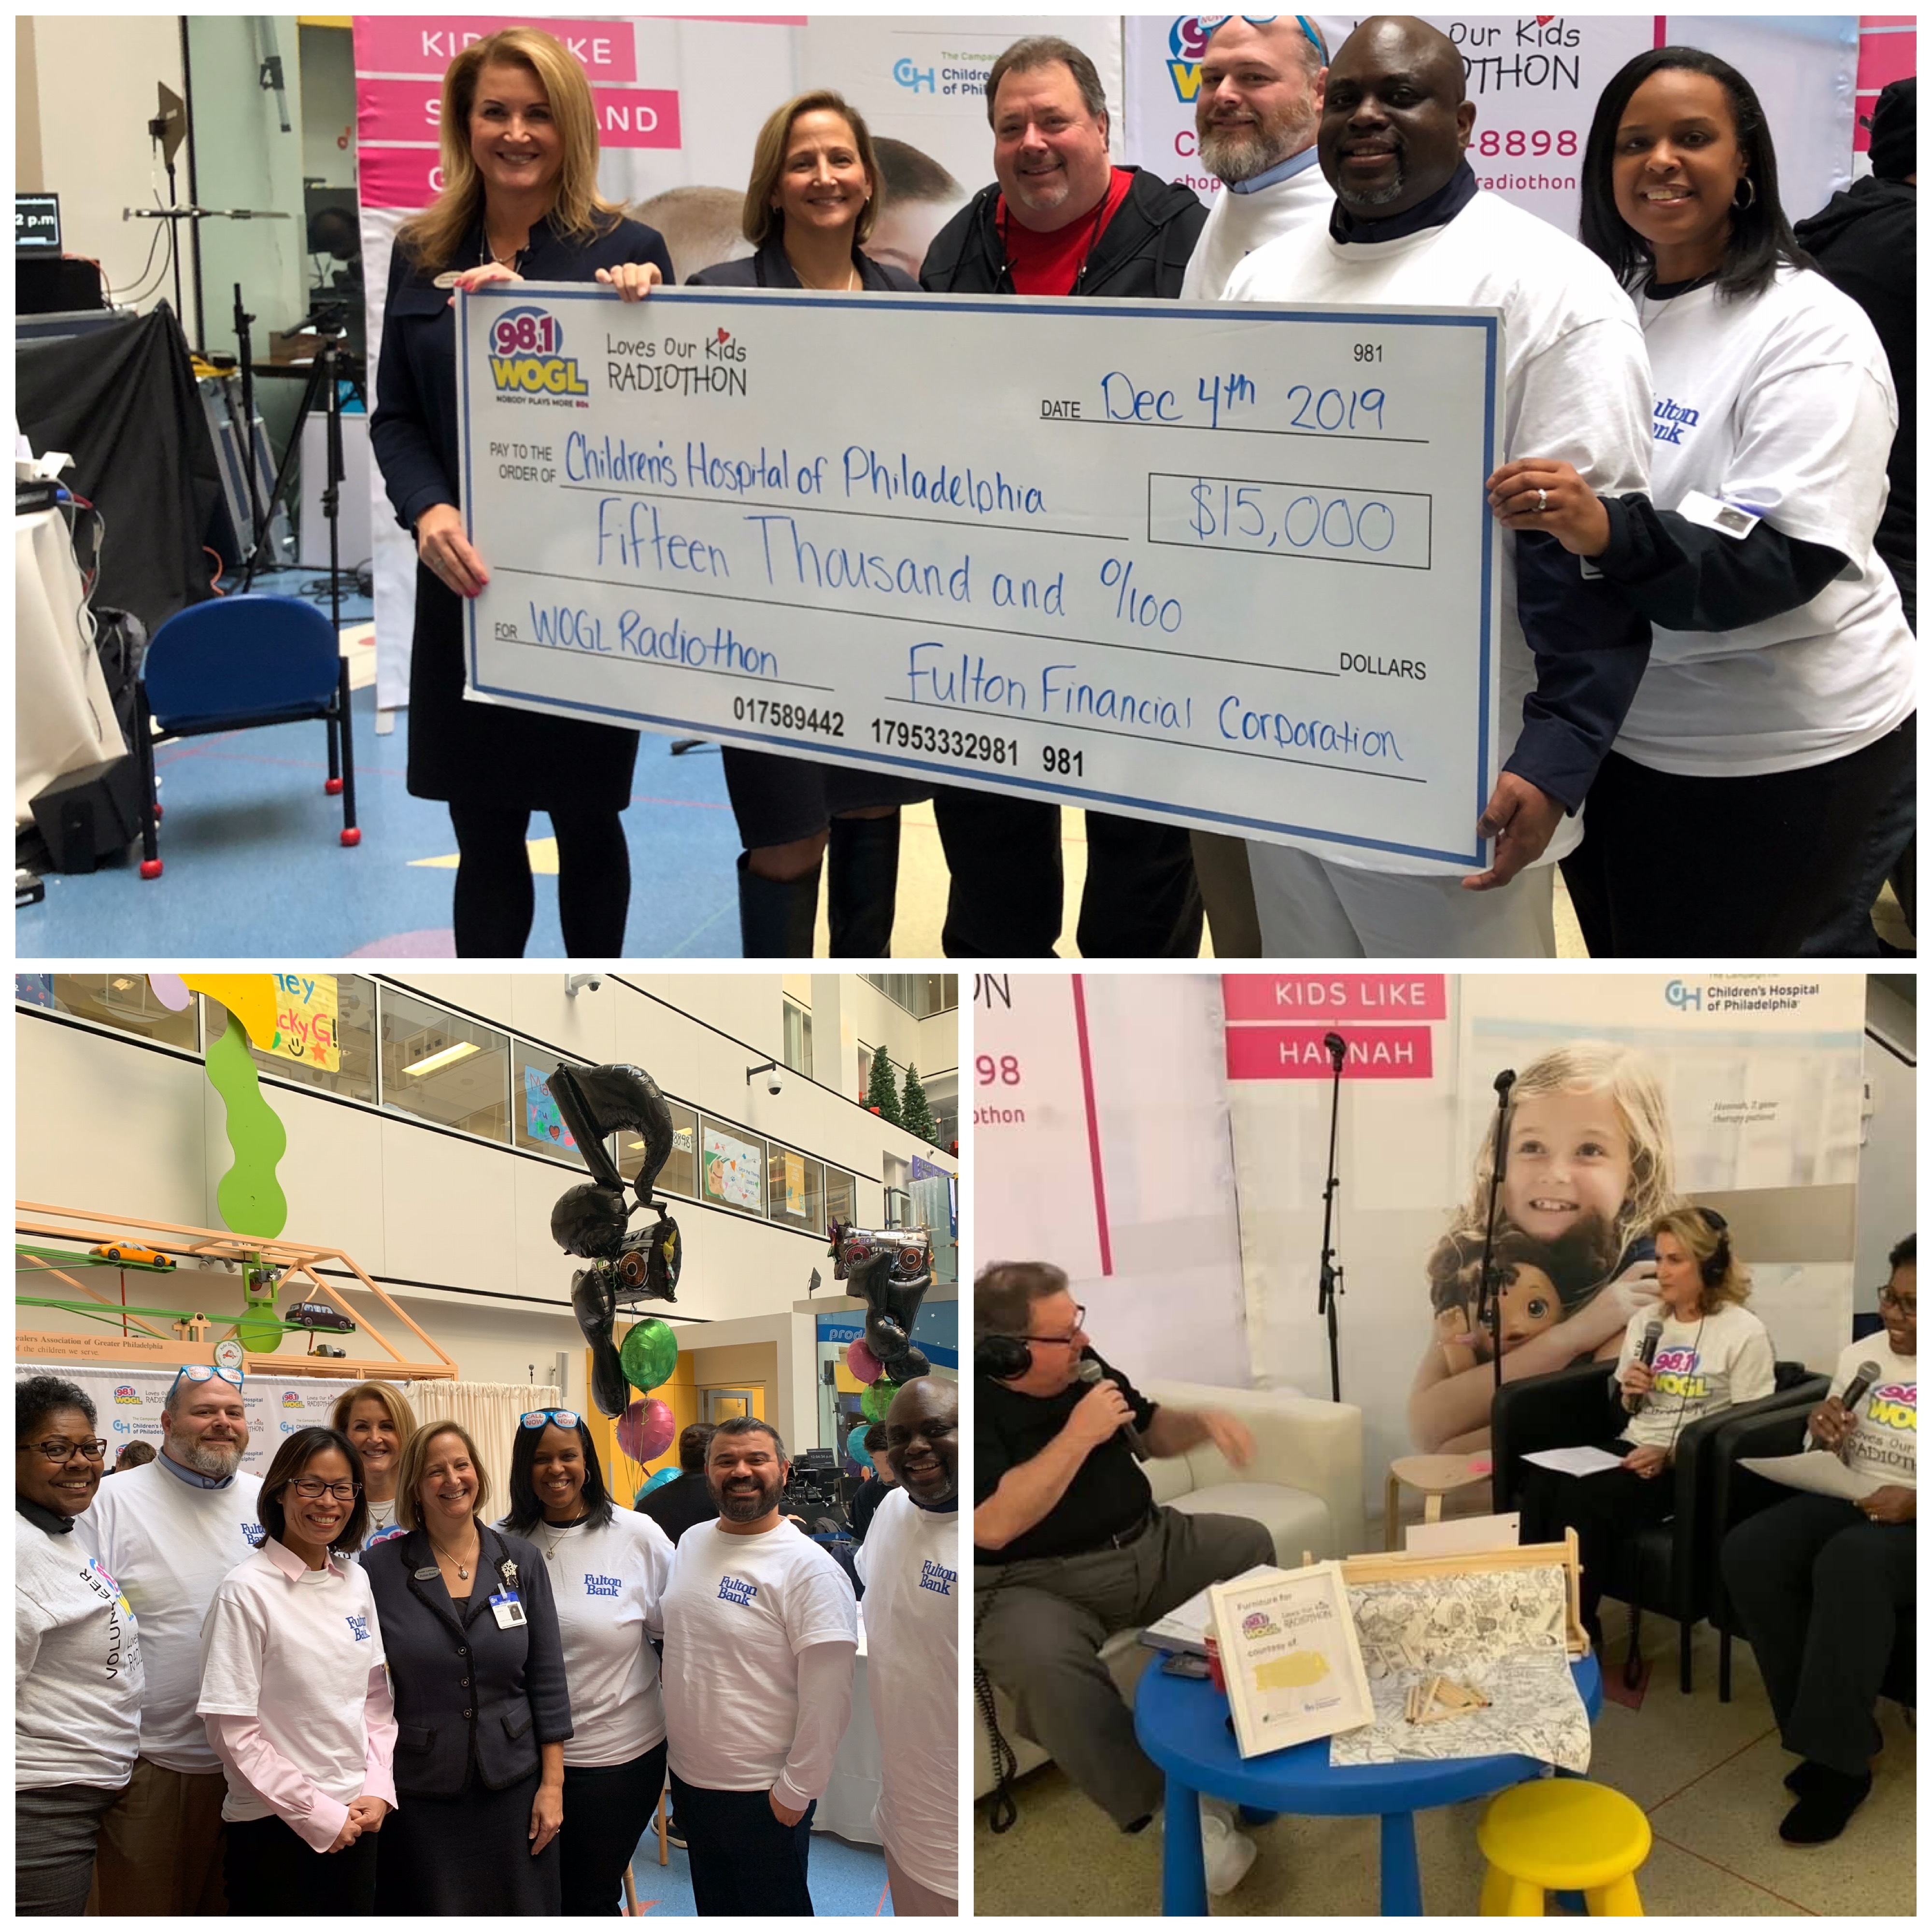 Fulton Bank employees participate in CHOP radiothon